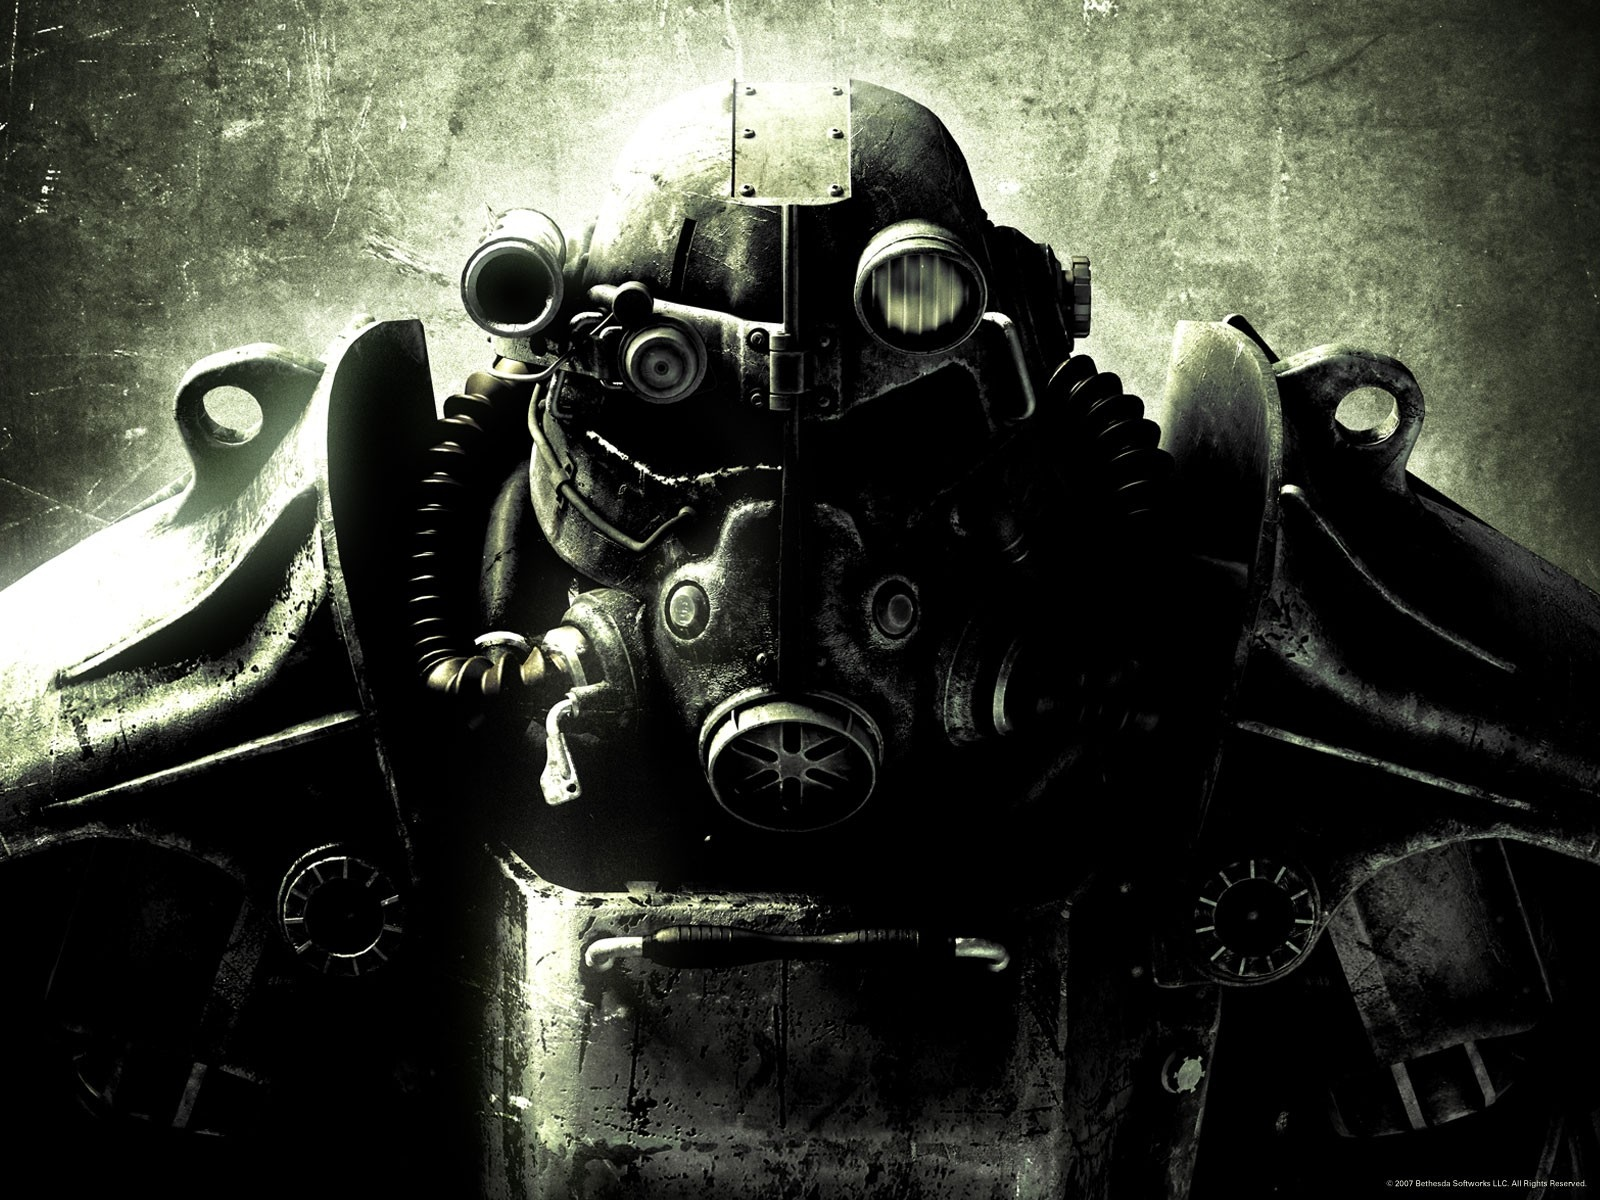 http://www.slashfilm.com/wp/wp-content/images/fallout3.jpg